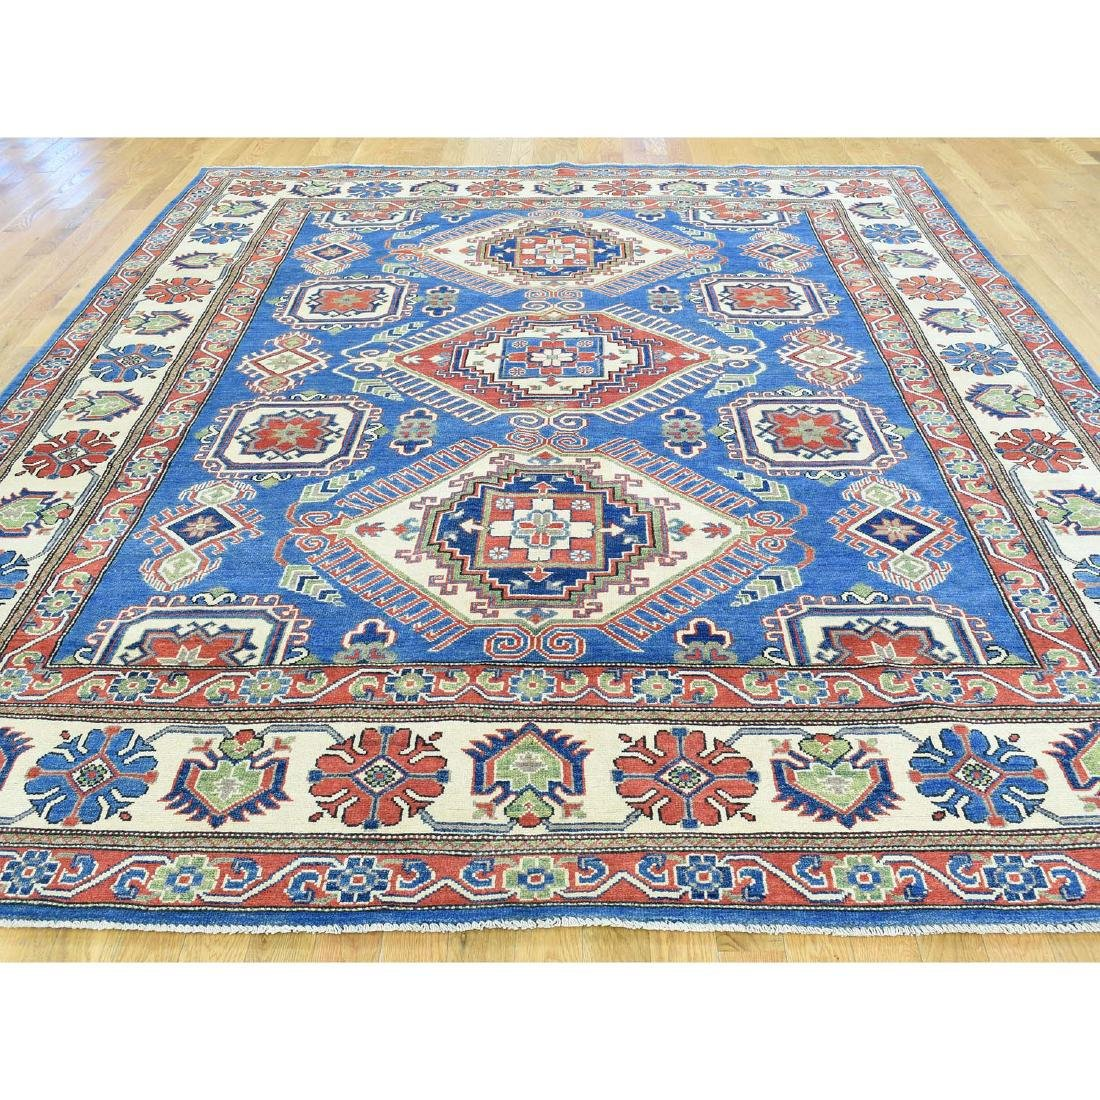 Hand-Knotted Tribal Design Kazak Pure Wool Rug 8.5x10 - 2